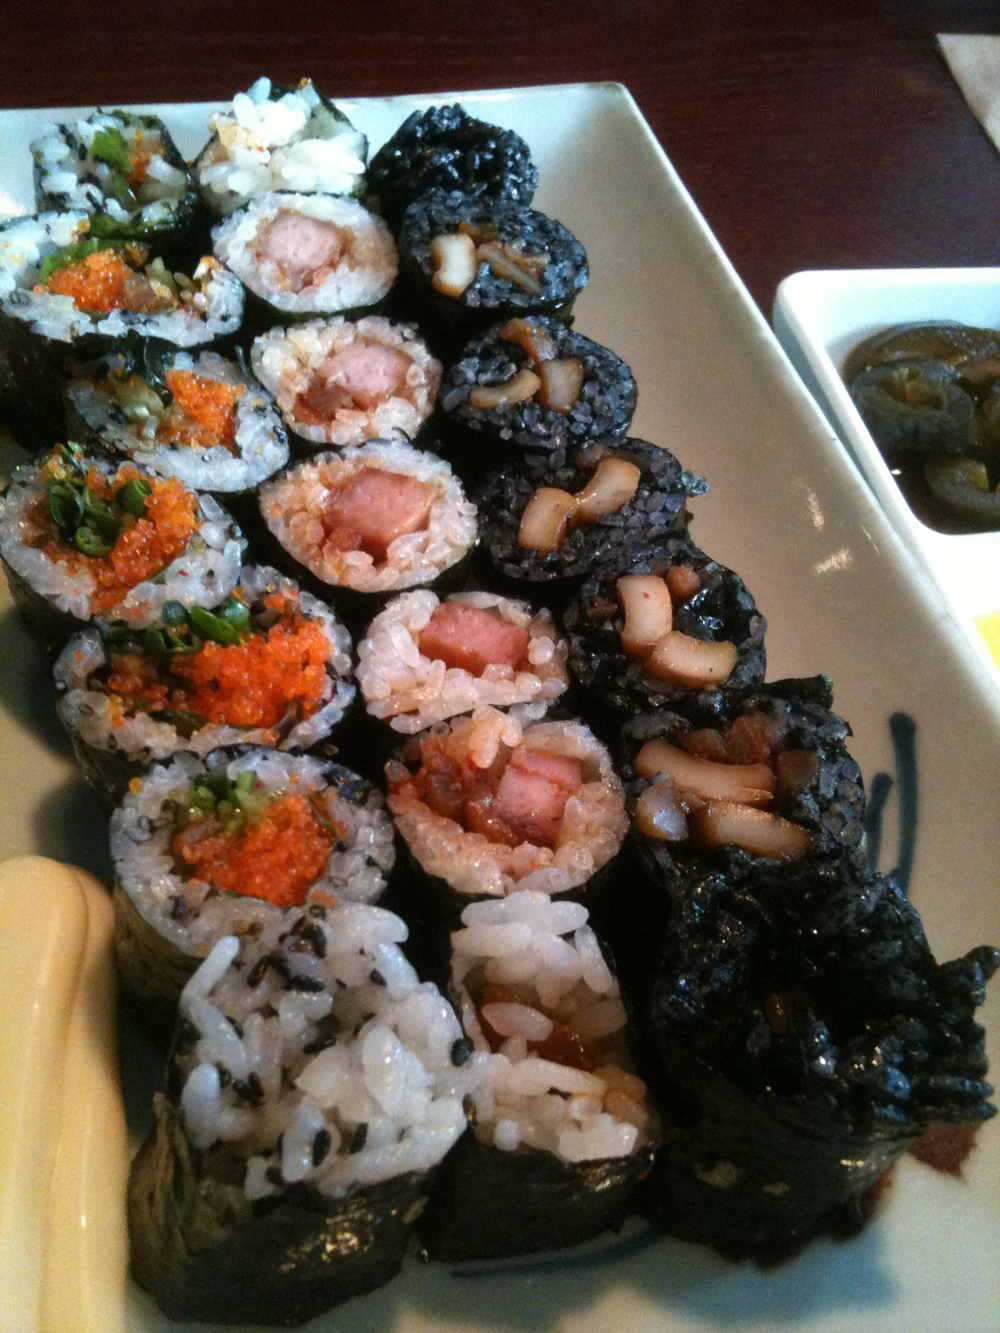 Special Mari II:    I usually order this one which comes with a spam roll, calamri with black squid ink rice and fish roe rolls.